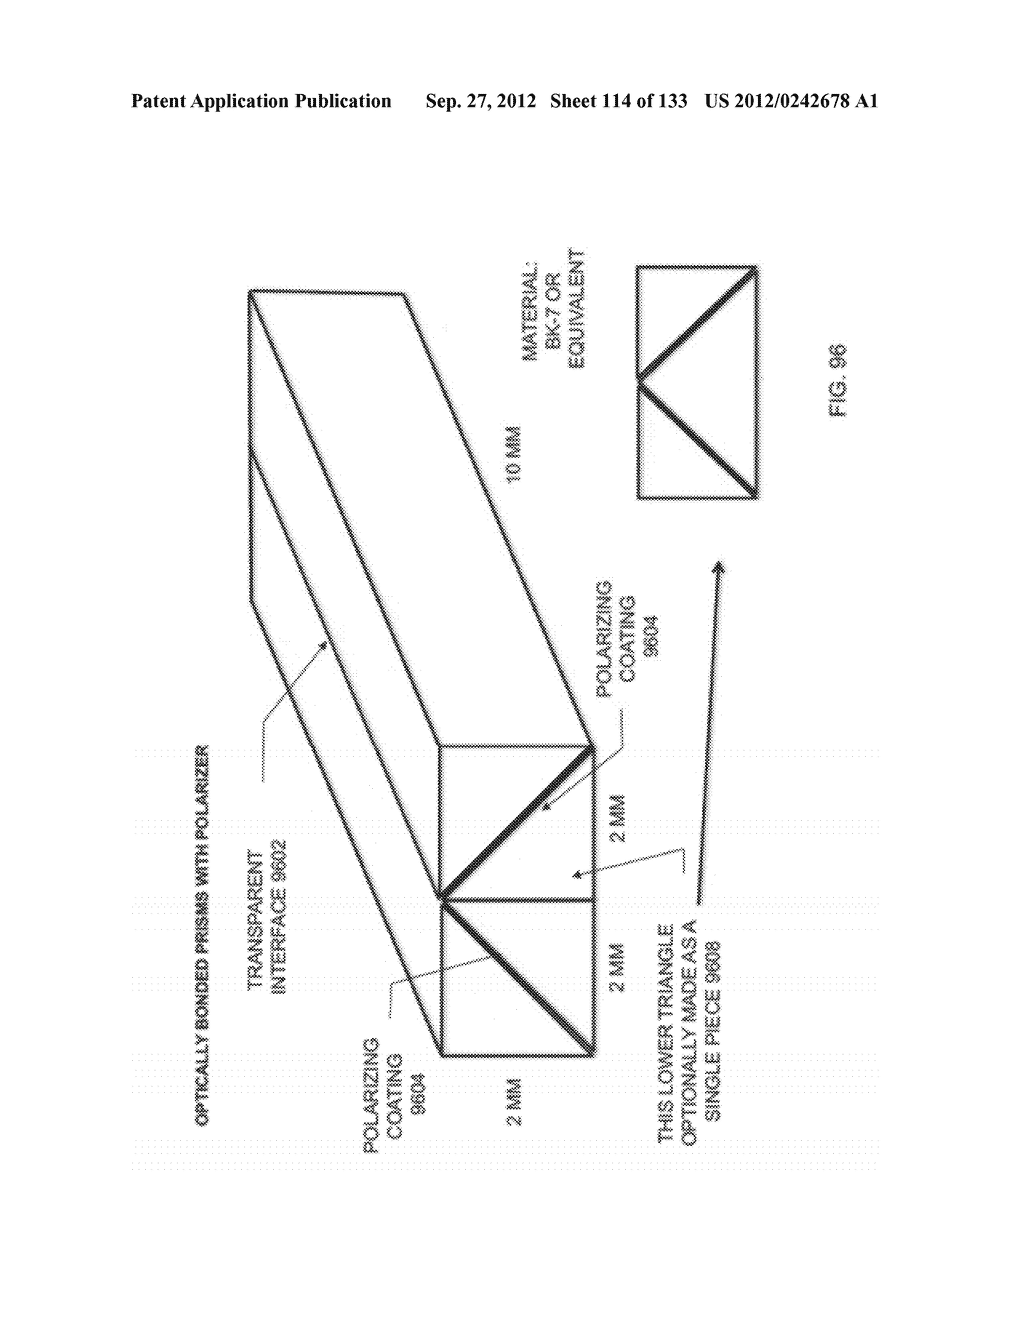 SEE-THROUGH NEAR-EYE DISPLAY GLASSES INCLUDING AN AUTO-BRIGHTNESS CONTROL     FOR THE DISPLAY BRIGHTNESS BASED ON THE BRIGHTNESS IN THE ENVIRONMENT - diagram, schematic, and image 115